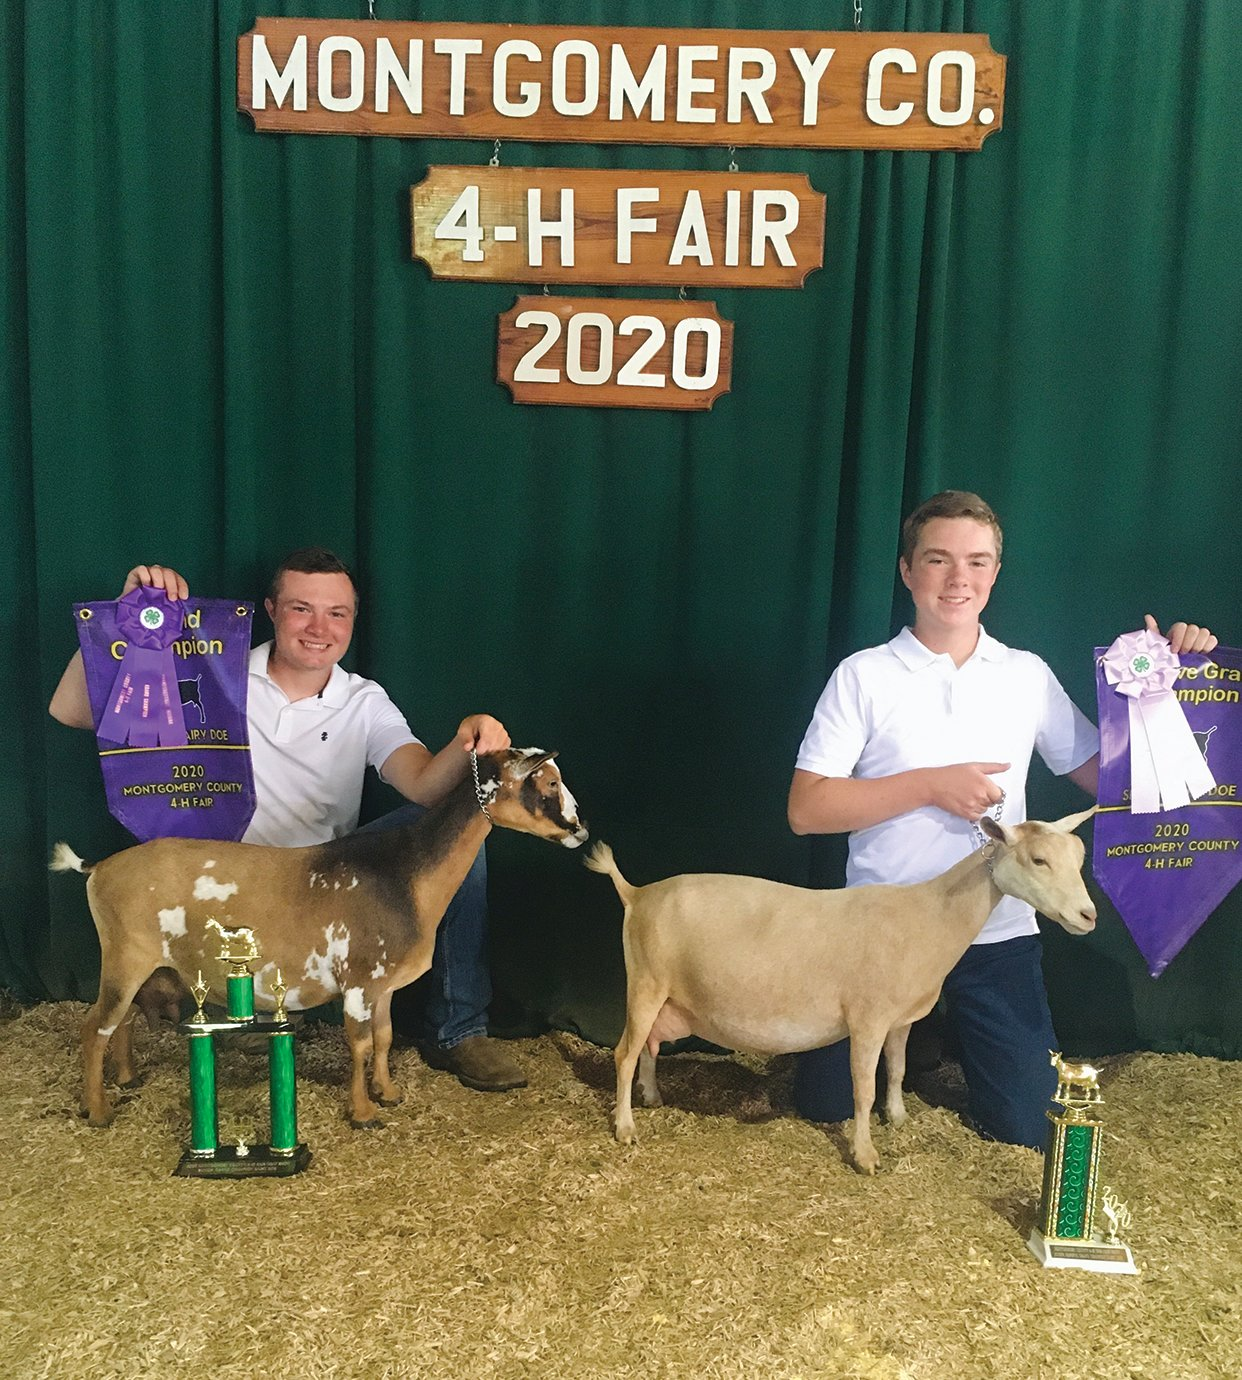 Drew Runyan, left, and Brent Runyan showoff their Grand Champion and Reserve Grand Champion dairy does, respectively, on July 21 at the 2020 Montgomery County 4-H Fair.